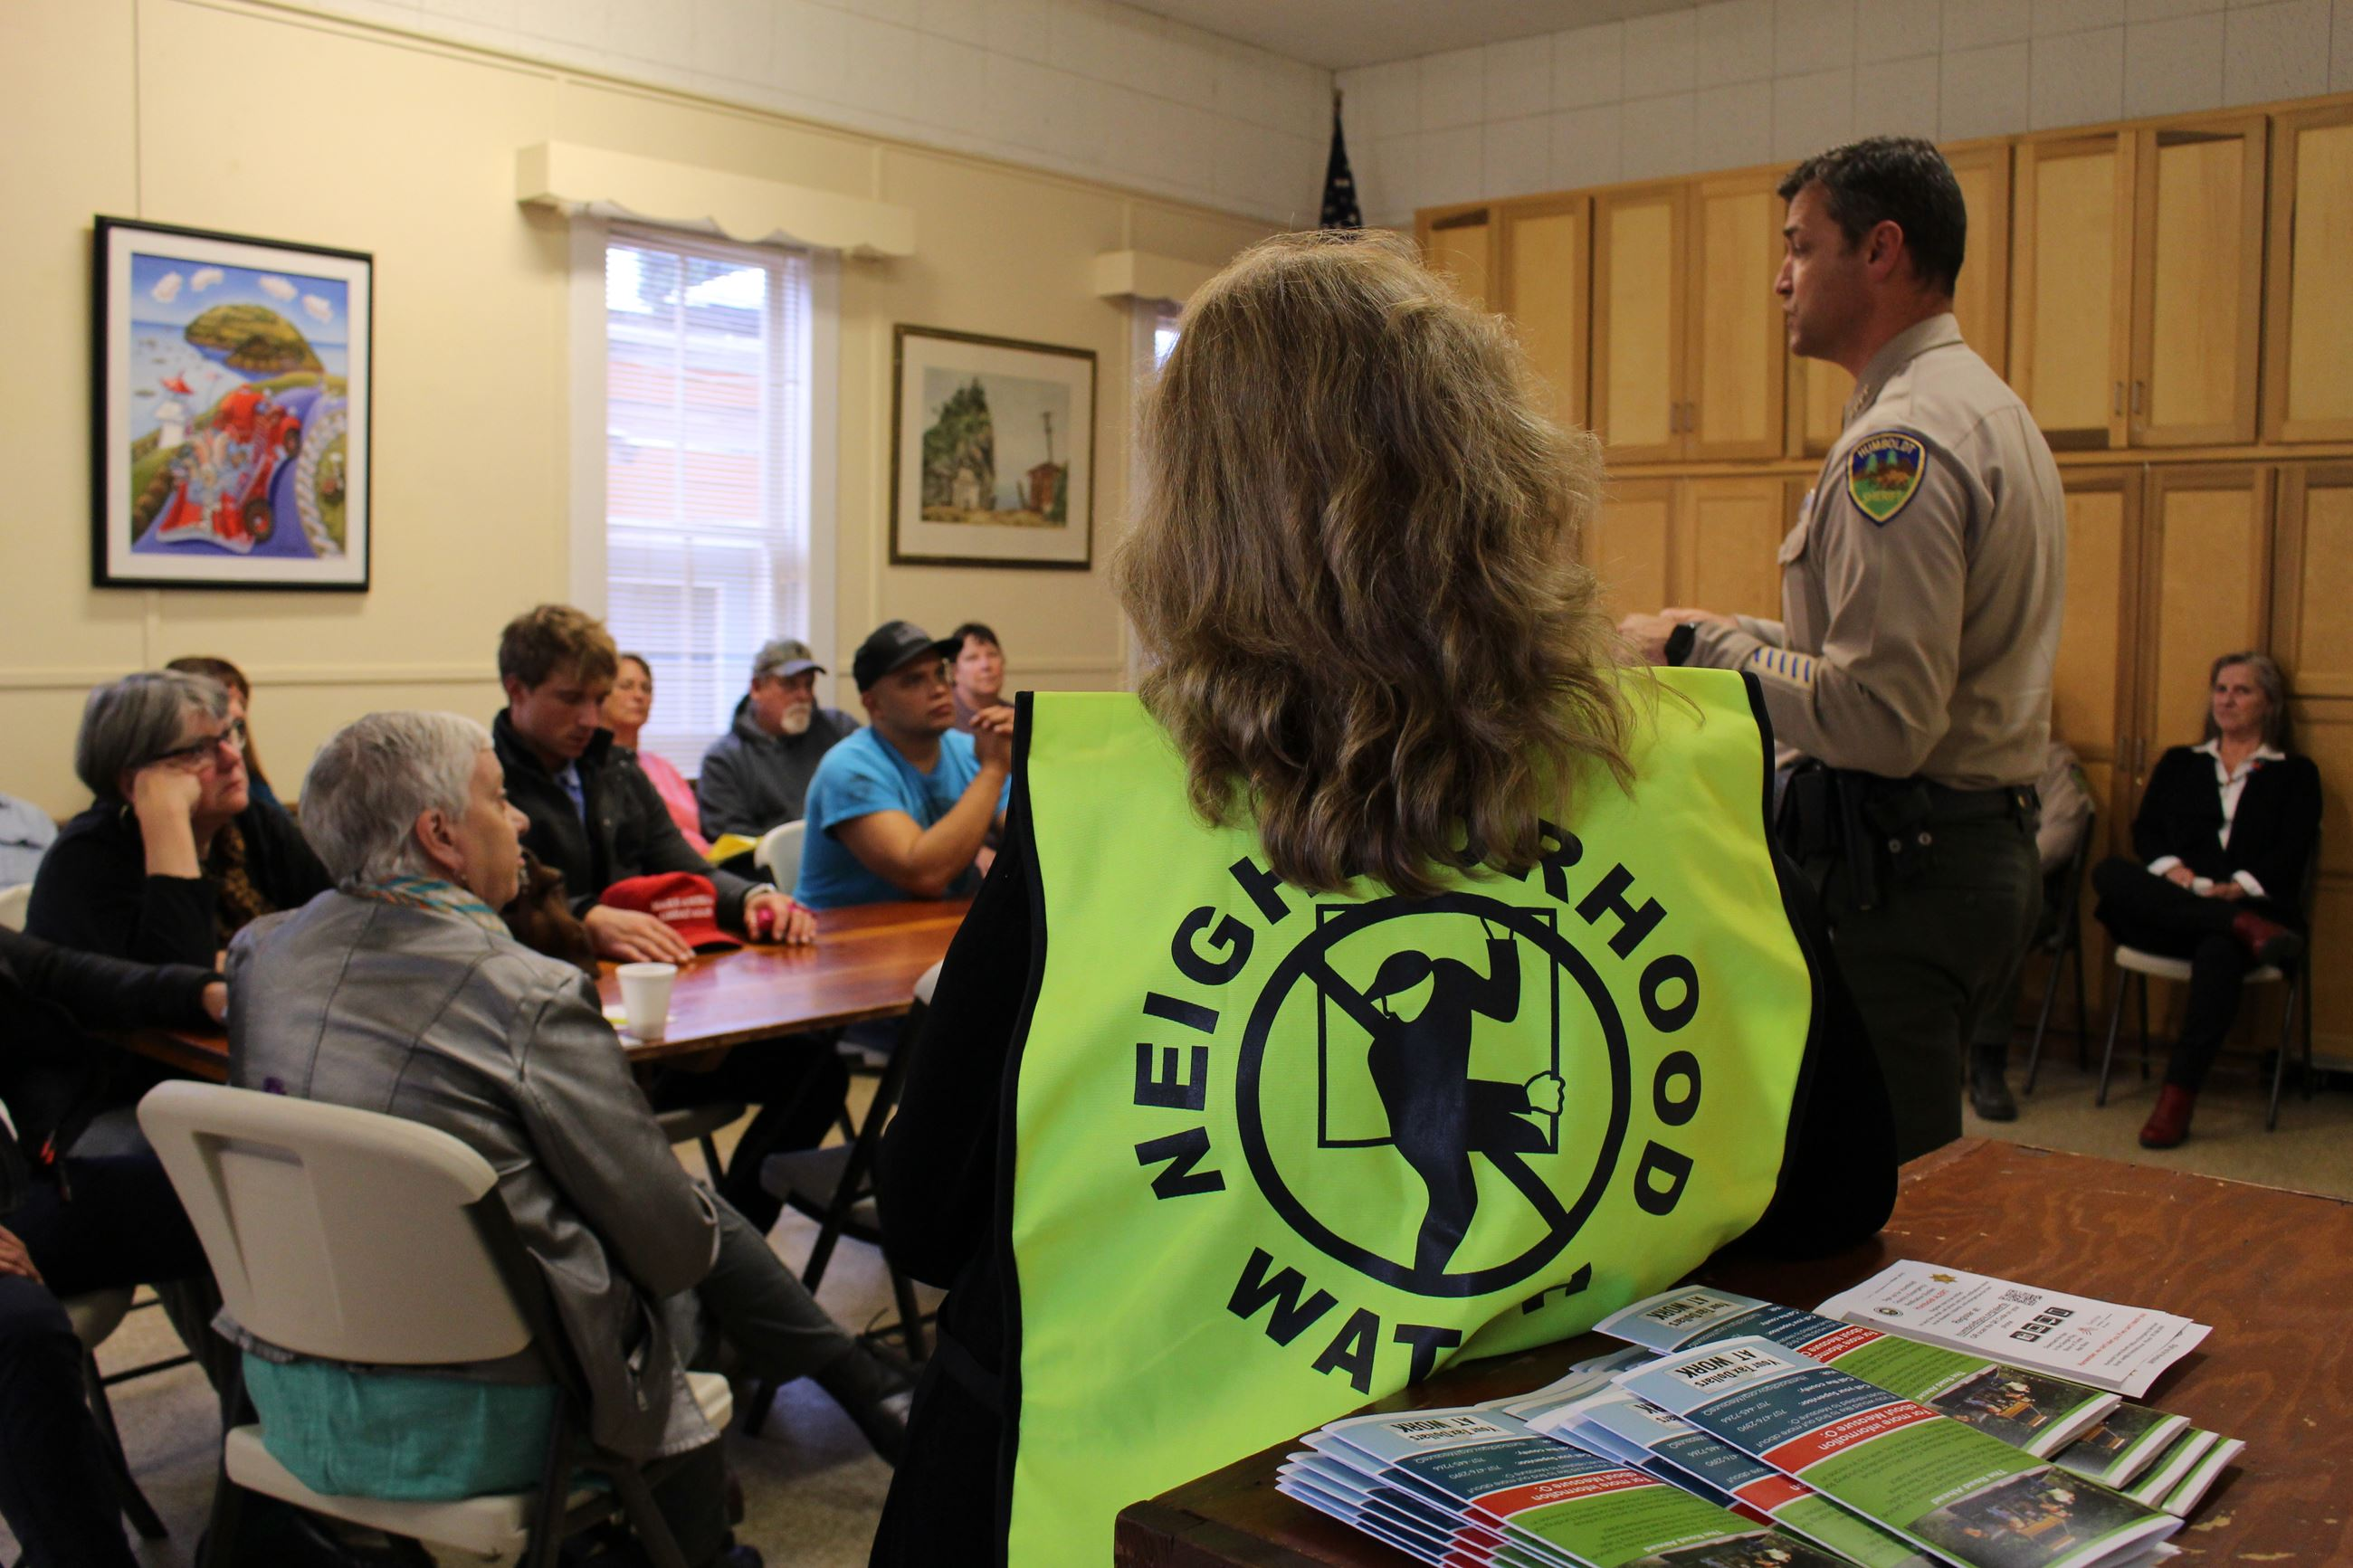 A Neighborhood Watch volunteer with a vest on